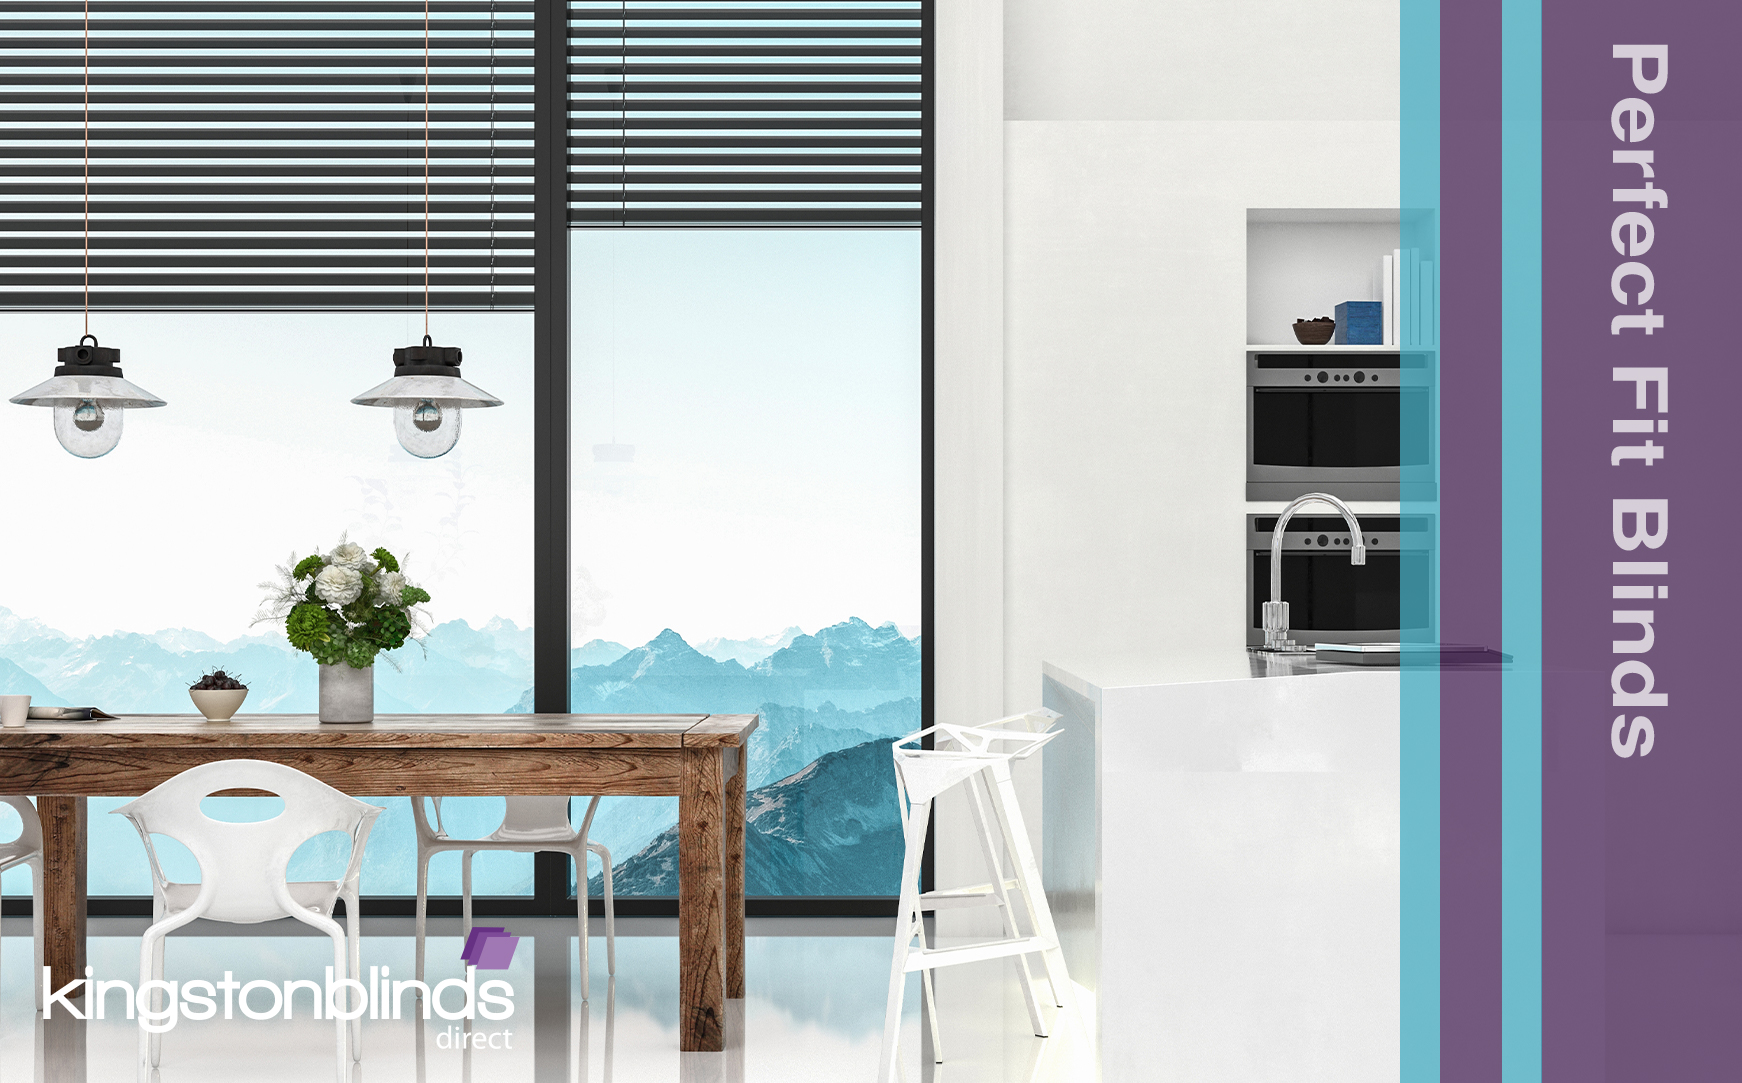 perfect fit blinds hull, blinds company hull, blinds online